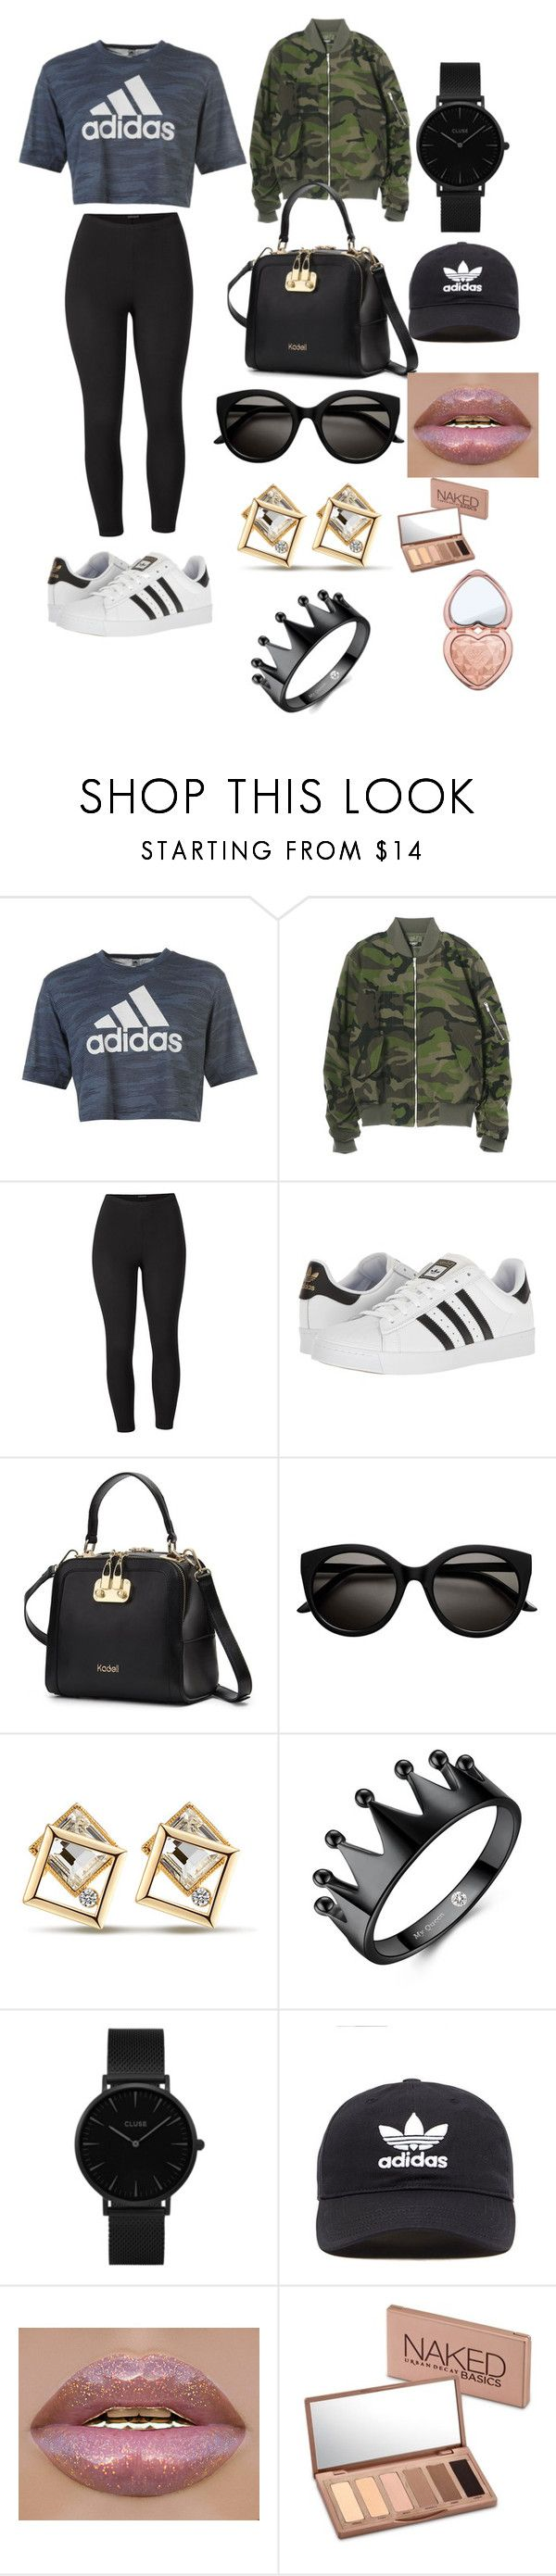 """""""Untitled #23"""" by sophiajanethompson on Polyvore featuring adidas, Venus, CLUSE, adidas Originals, Urban Decay, Too Faced Cosmetics and plus size clothing"""